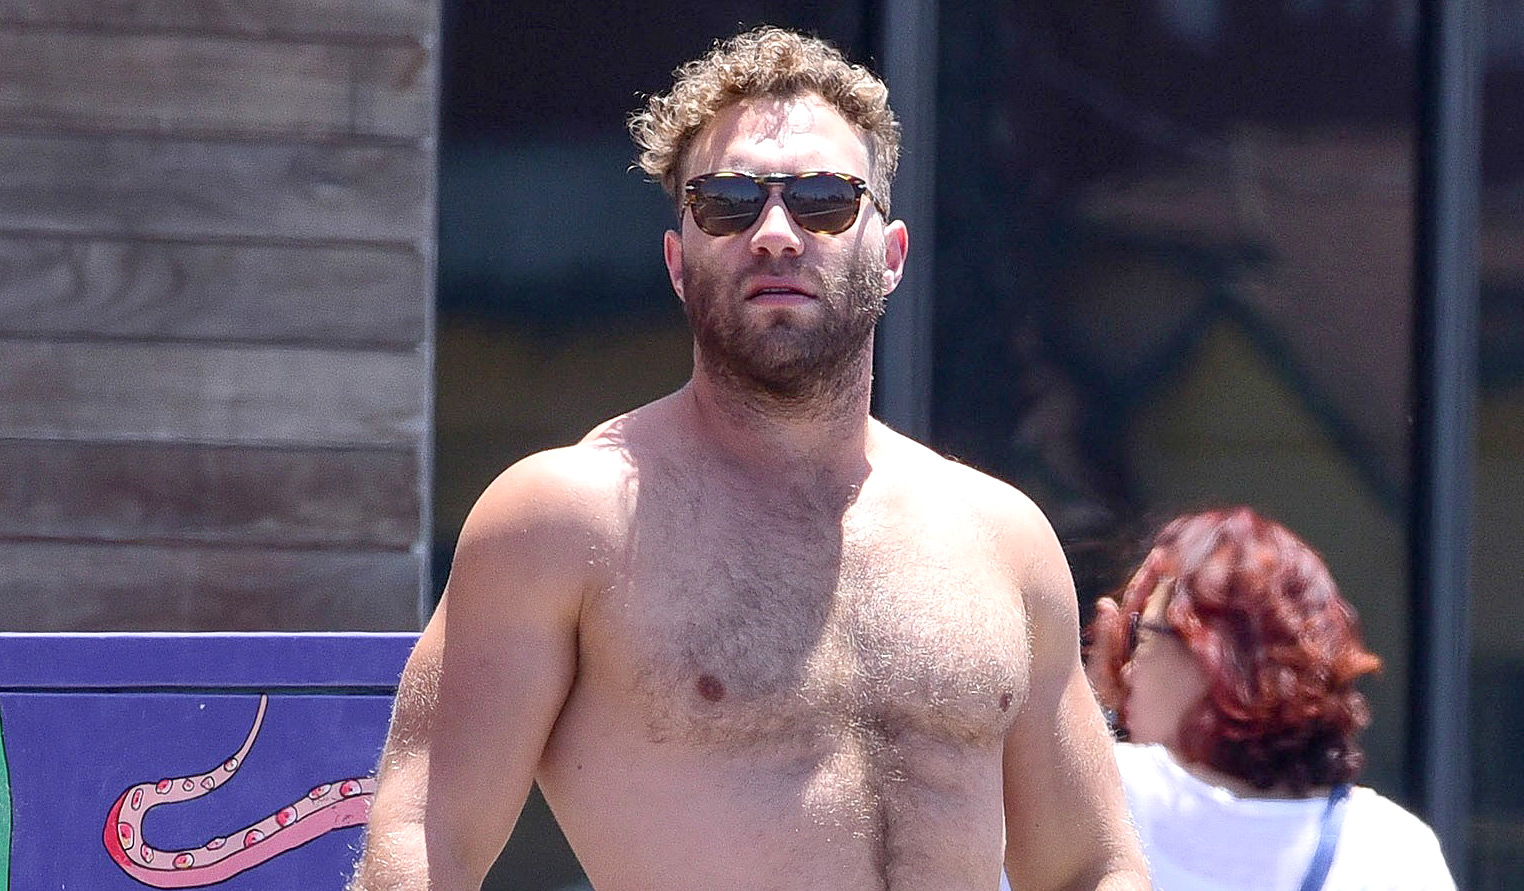 Suicide Squads Jai Courtney Looks So Hot While Shirtless